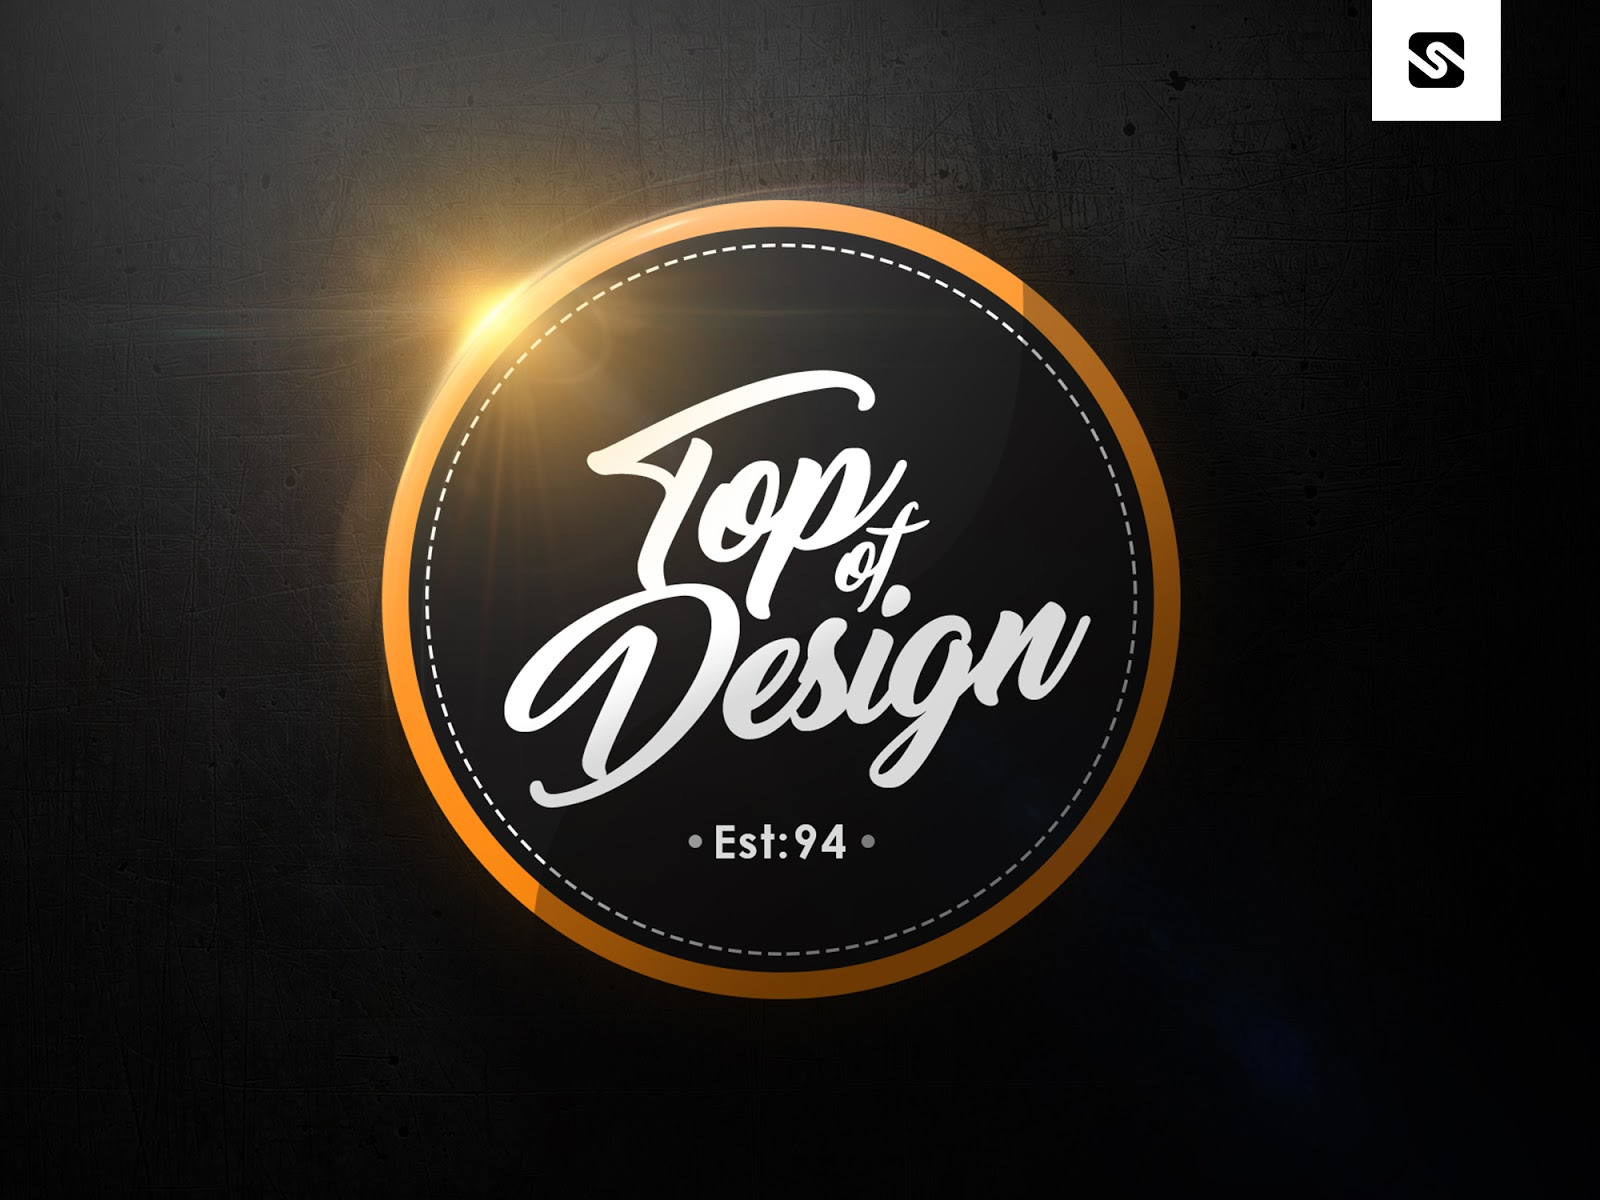 Free Download Modern Badge Logo Design Template PSD File - Free modern logo templates